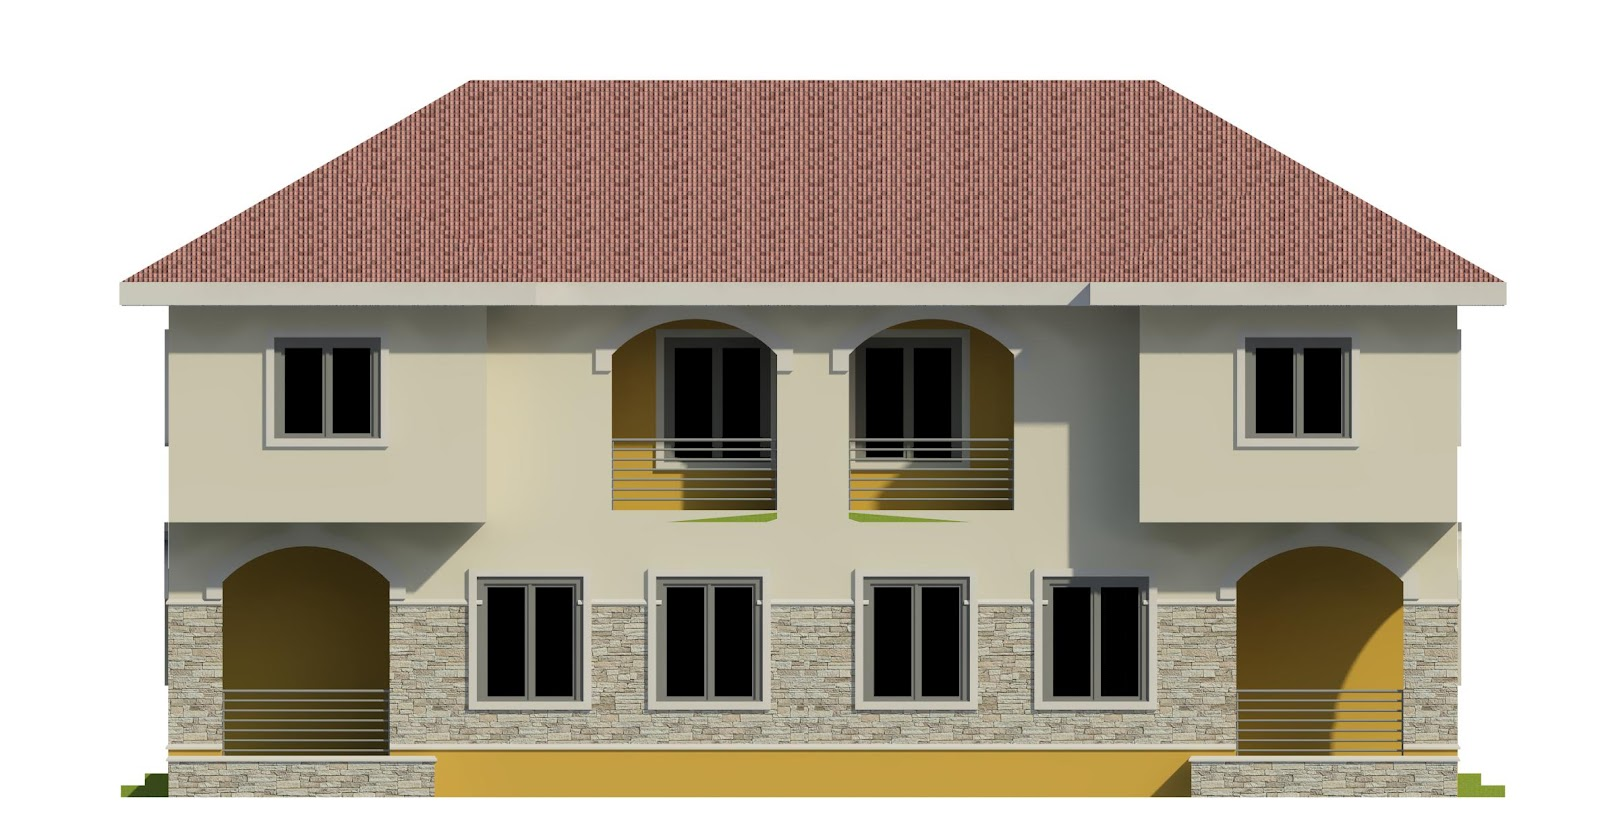 Dizyneresource Residential Building Designs 1 Two